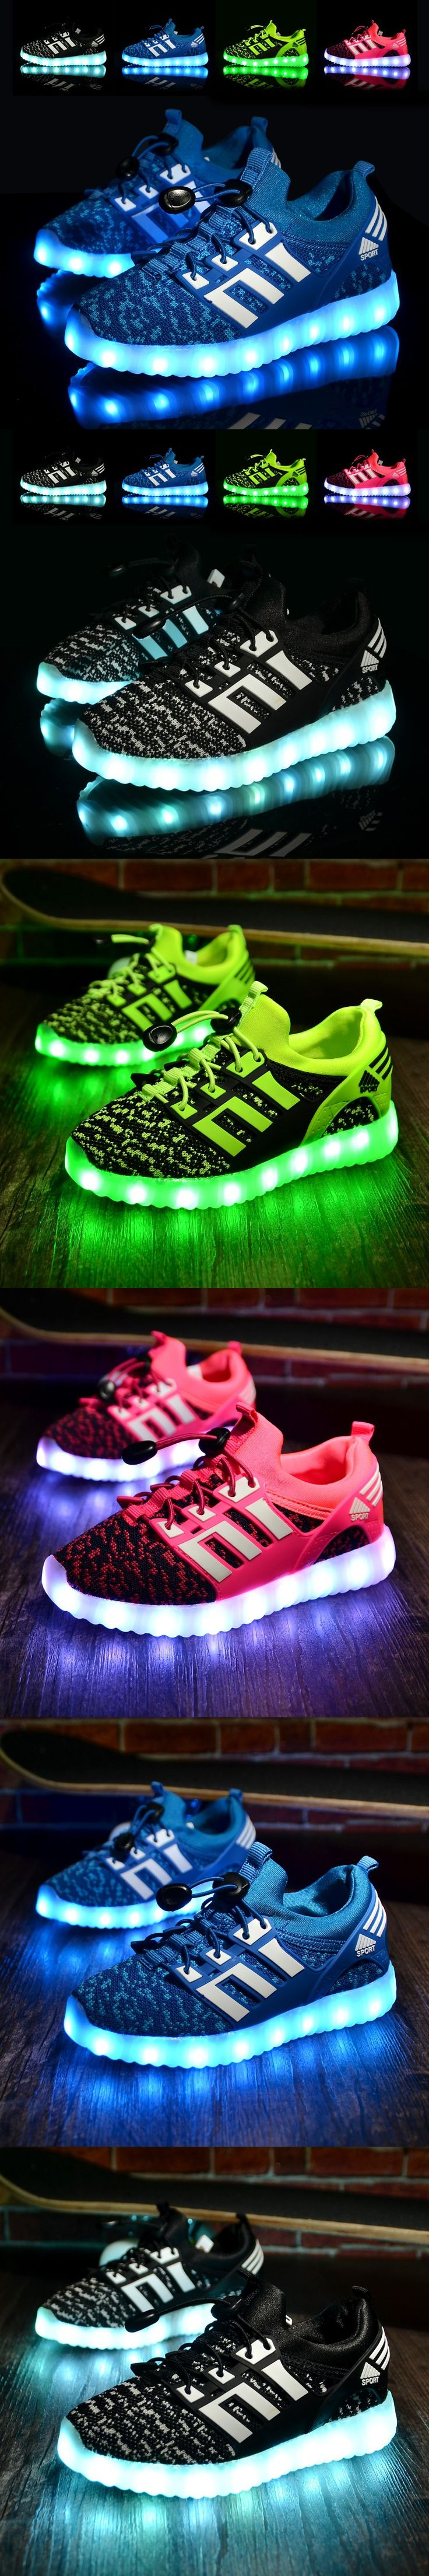 New 2016 Rechargable Kids Shoes with USB Sneakers Children Light UP LED  Shoes Boys \u0026 Girls